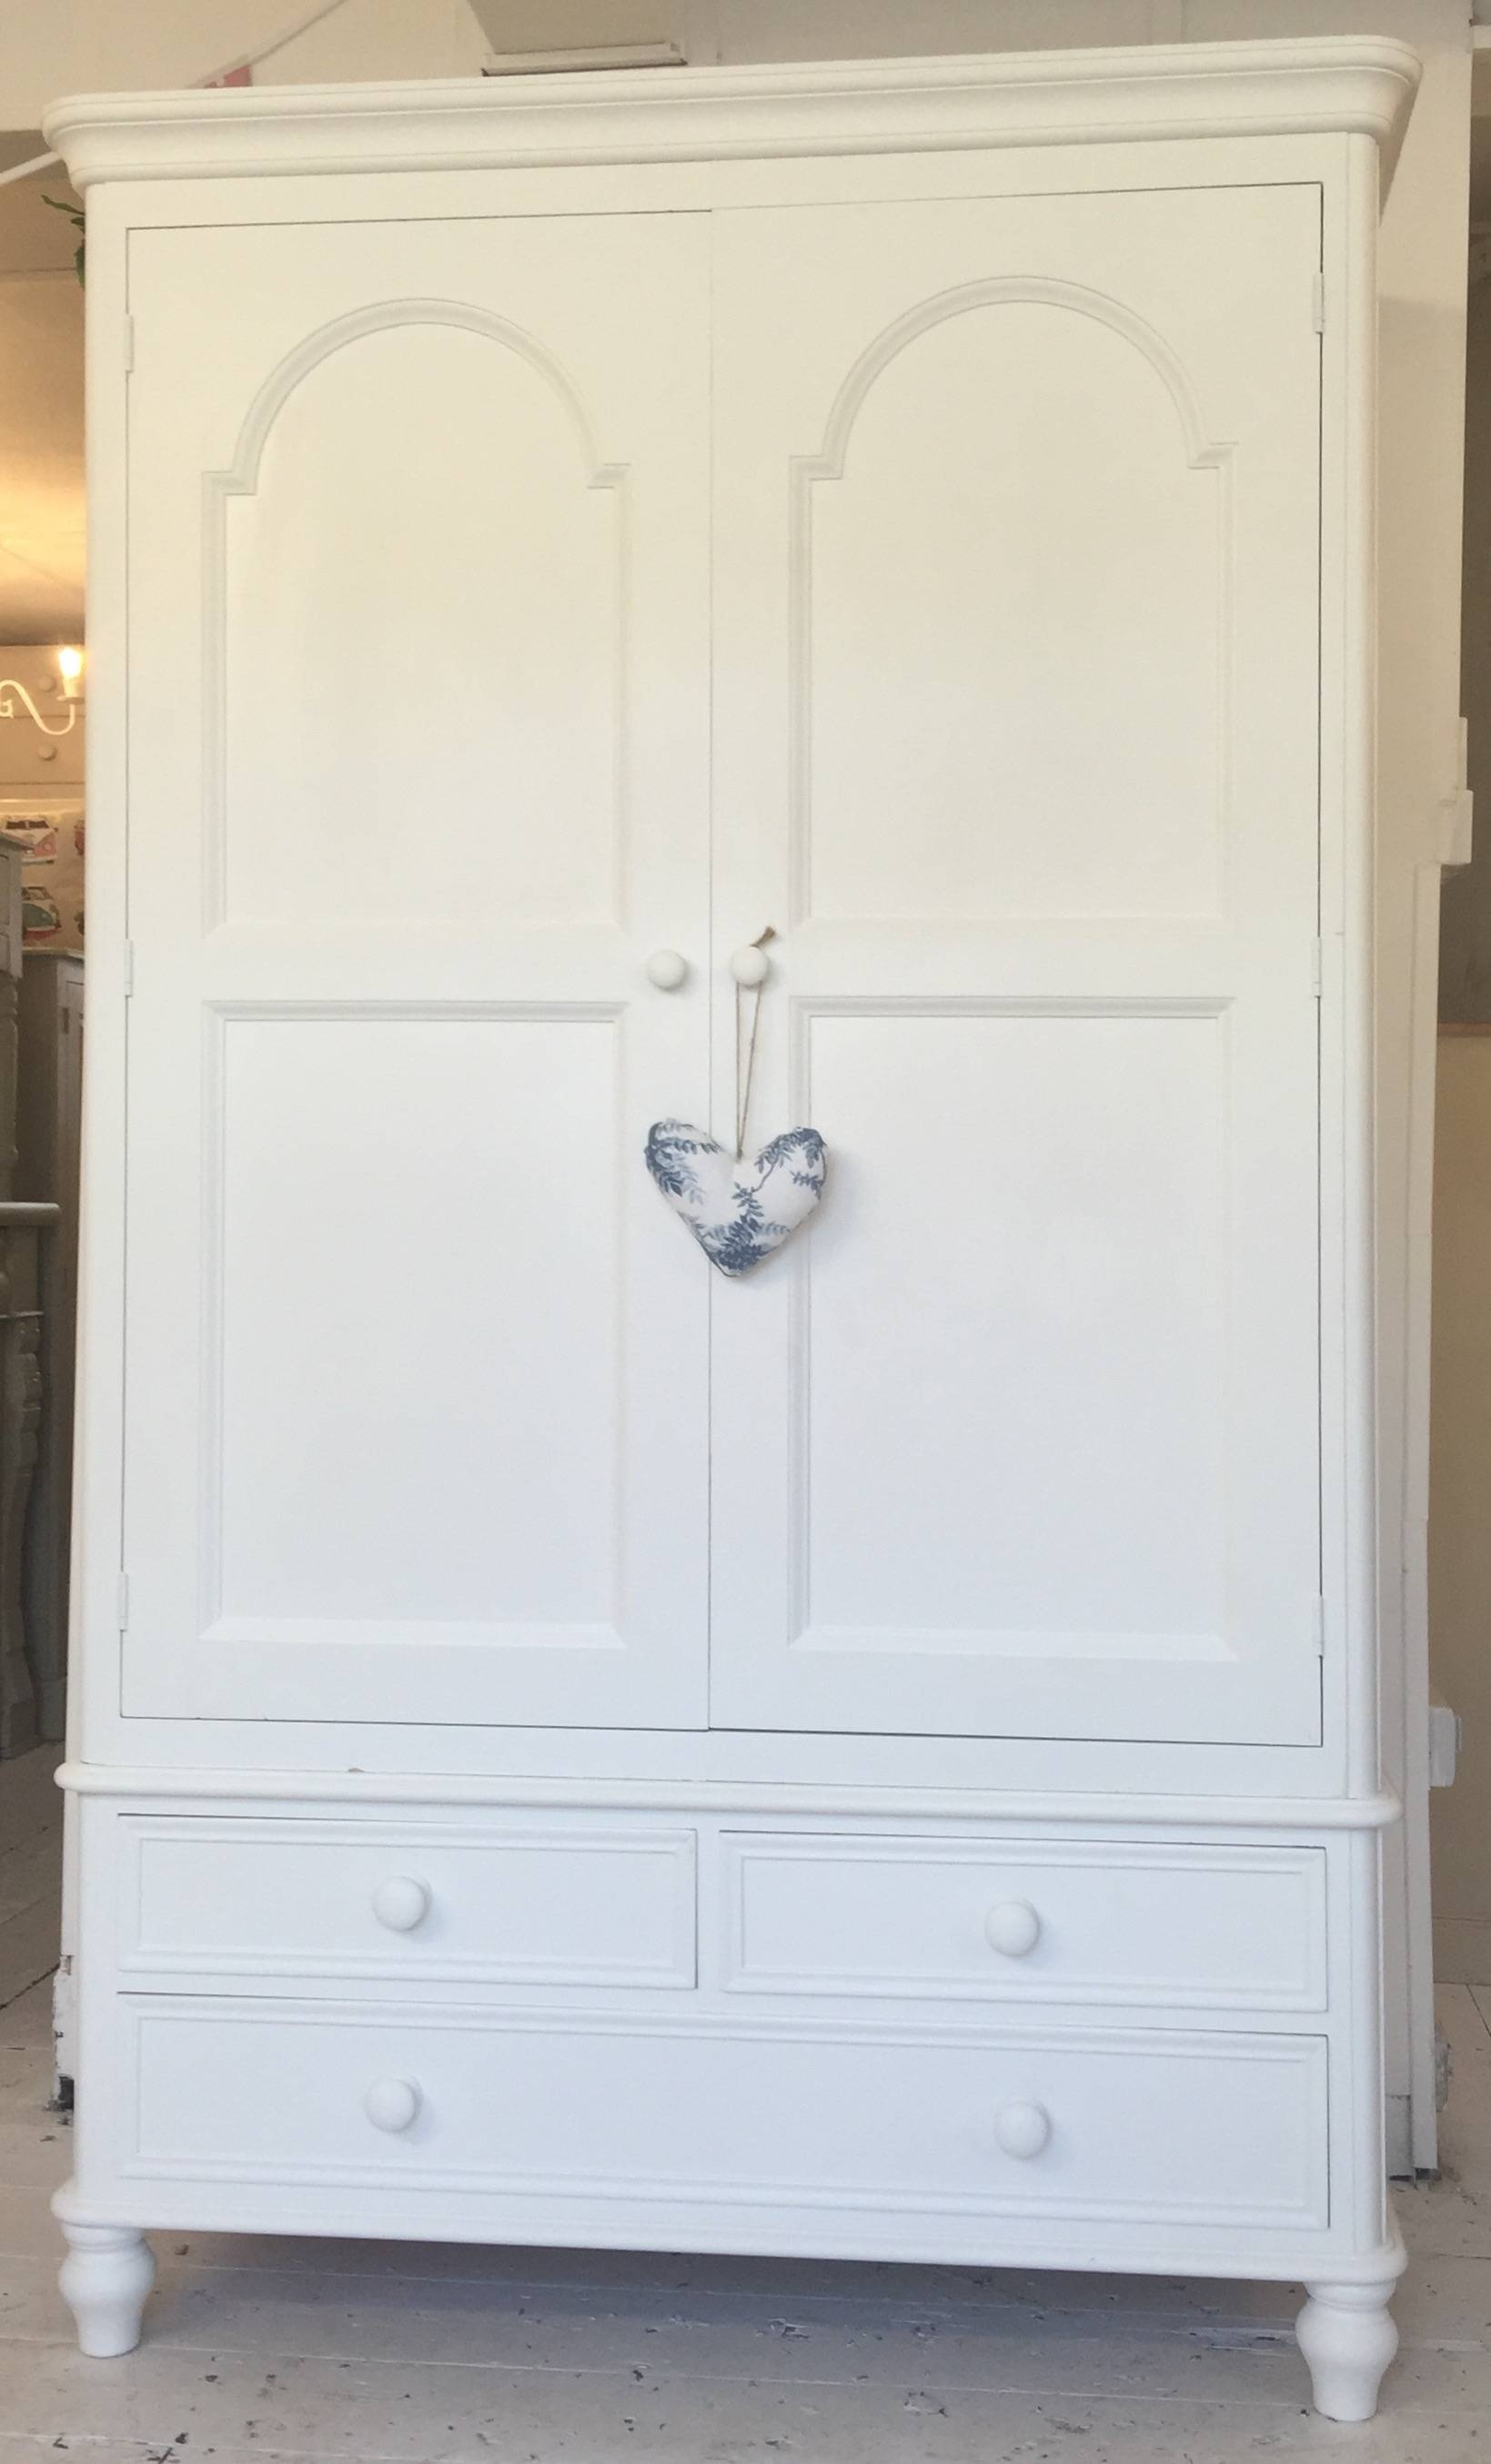 Large Solid Pine White Painted Wardrobe - Home Sweet Homehome throughout White Pine Wardrobes (Image 10 of 15)